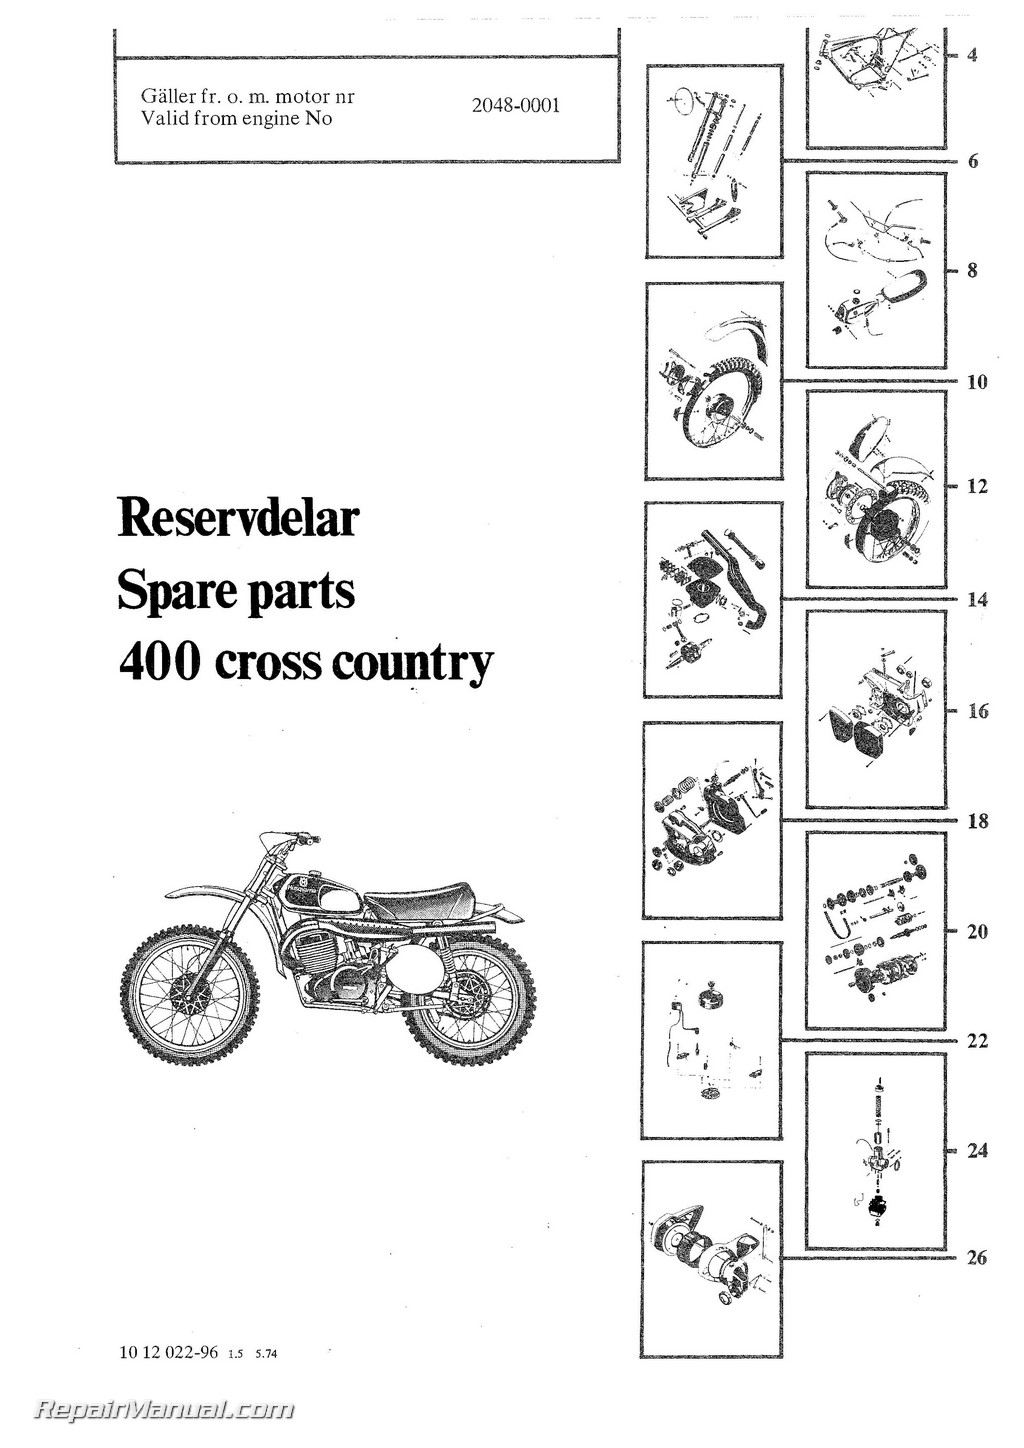 1974-1975 Husqvarna 400 WR Motorcycle Parts Manual